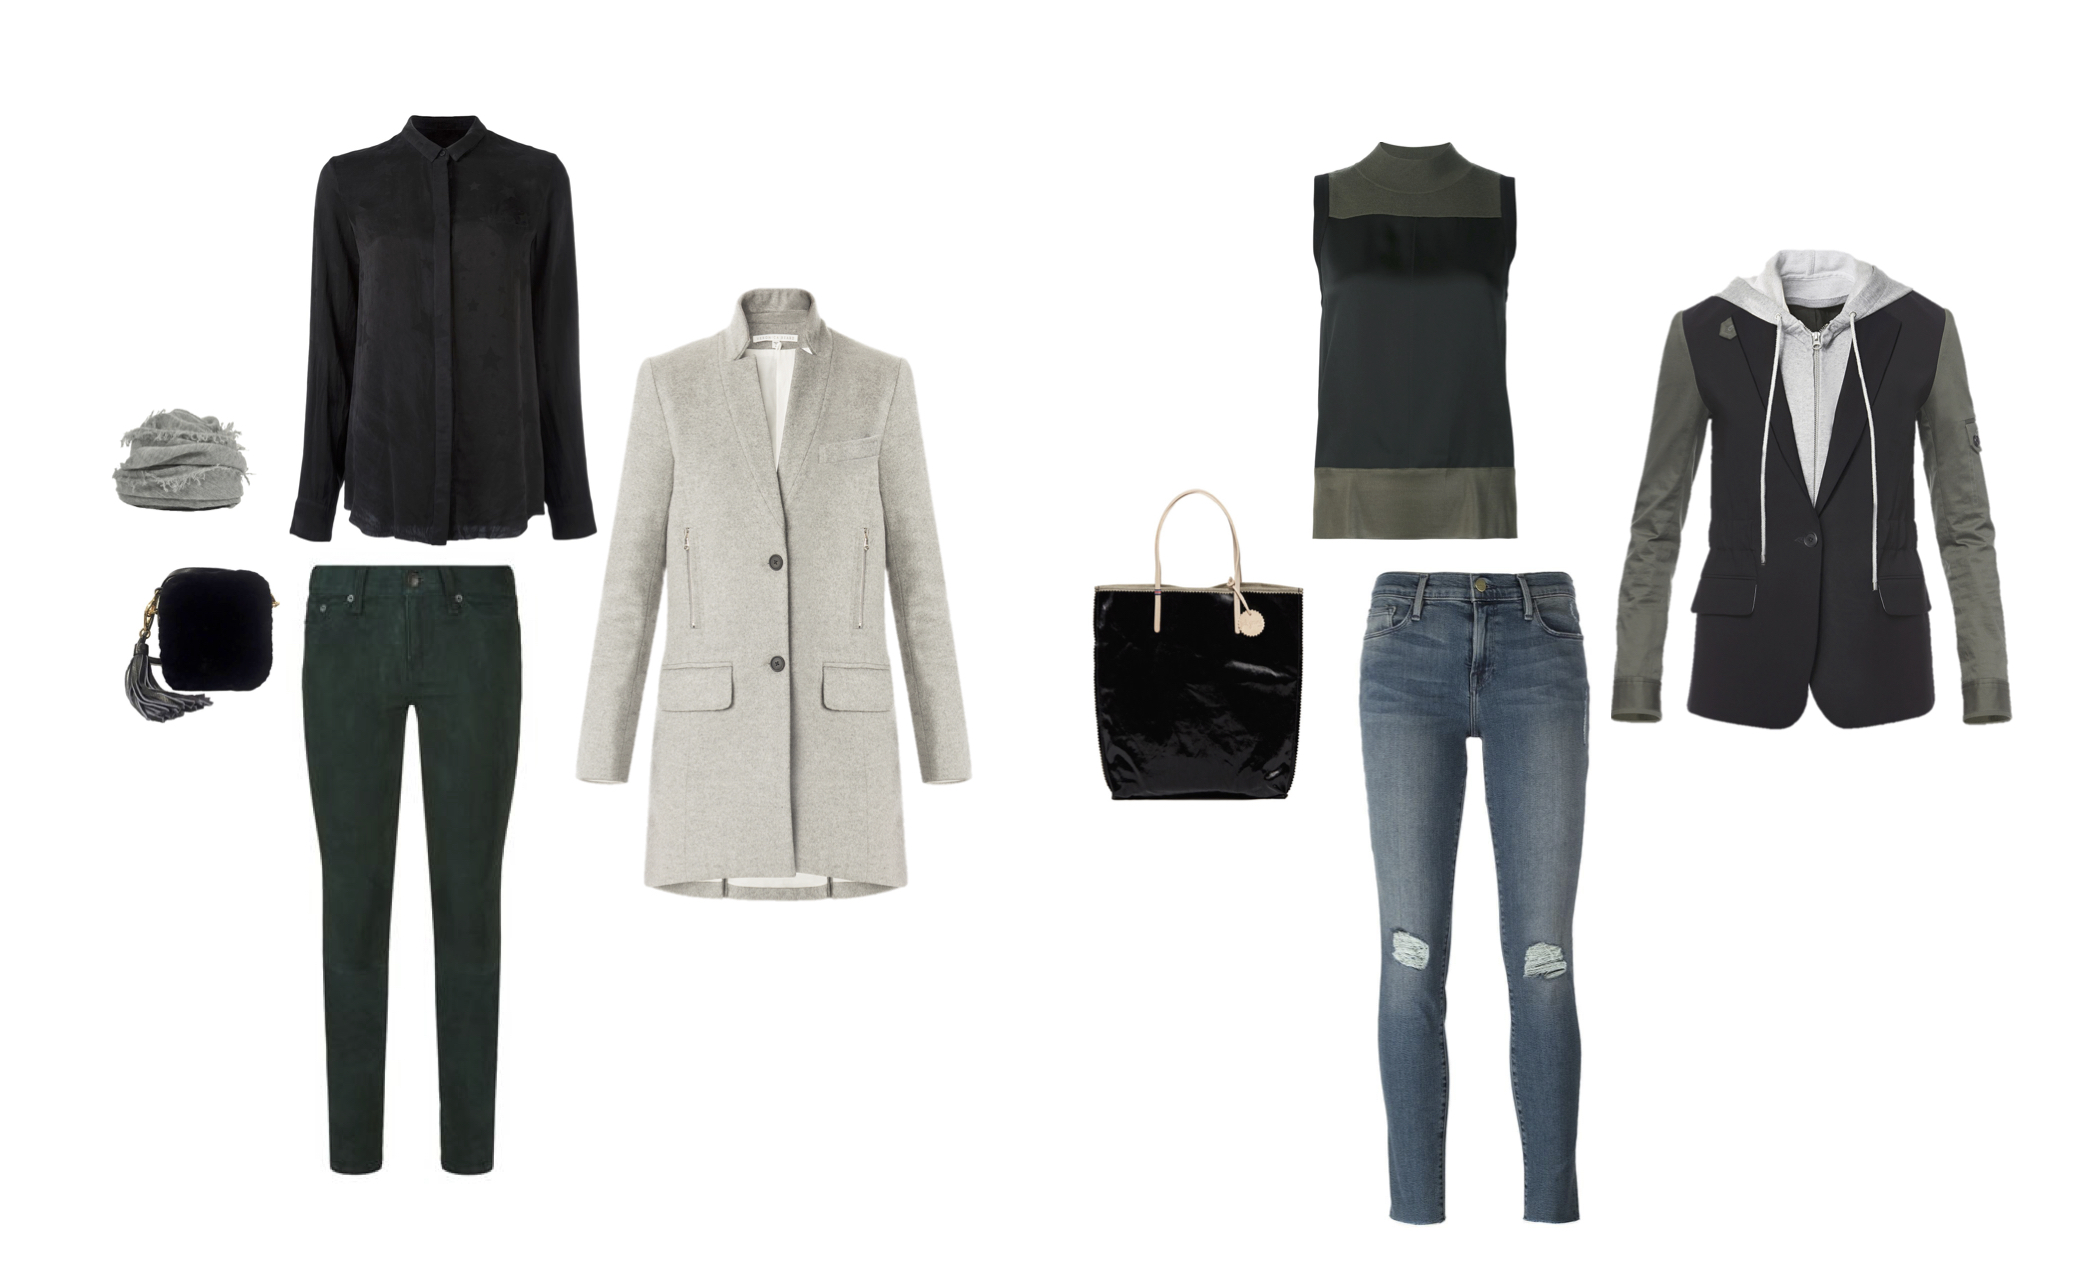 From L to R: Grisal cashmere scarf, Serpui shearling bag, Rag & Bone capri suede jeans, RtA Rita silk shirt, Veronica Beard car coat, Jack Gomme tote bag, Rag & Bone Vivienne top, Frame Denim jeans, Veronica Beard military jacket with dickie.